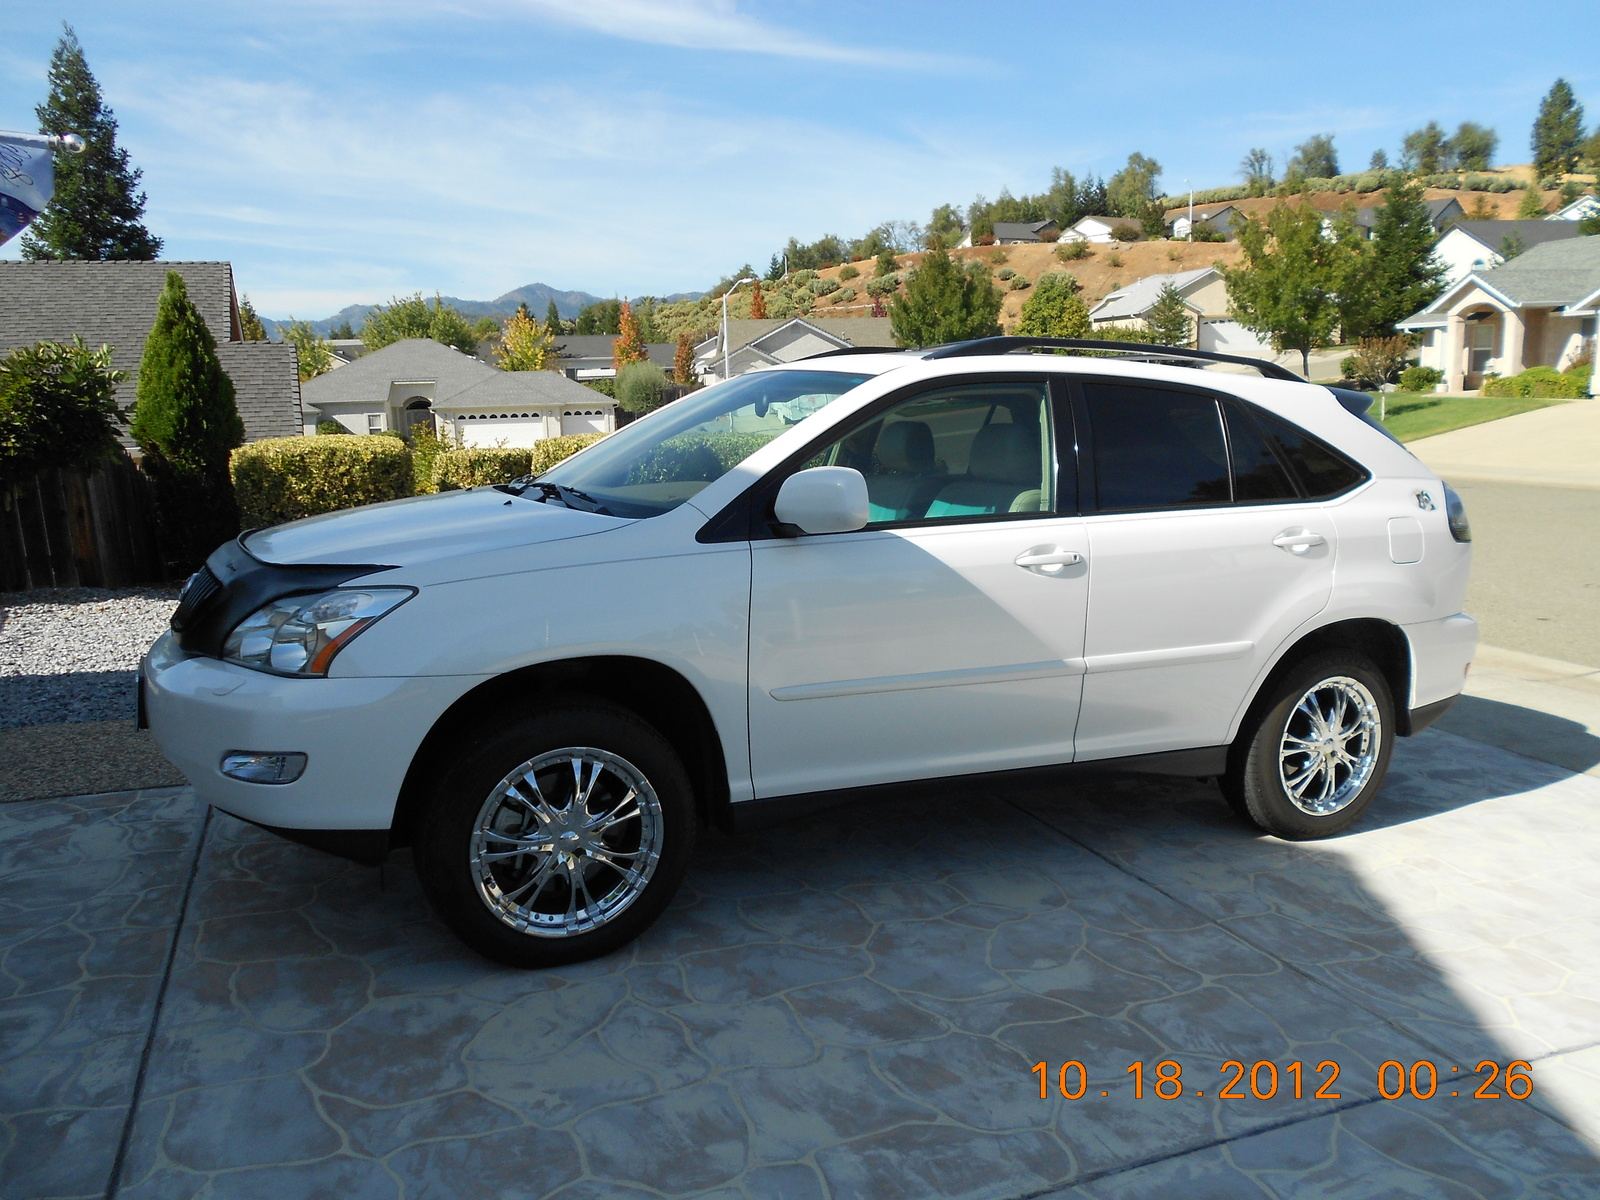 Picture of 2005 lexus rx 330 base awd exterior